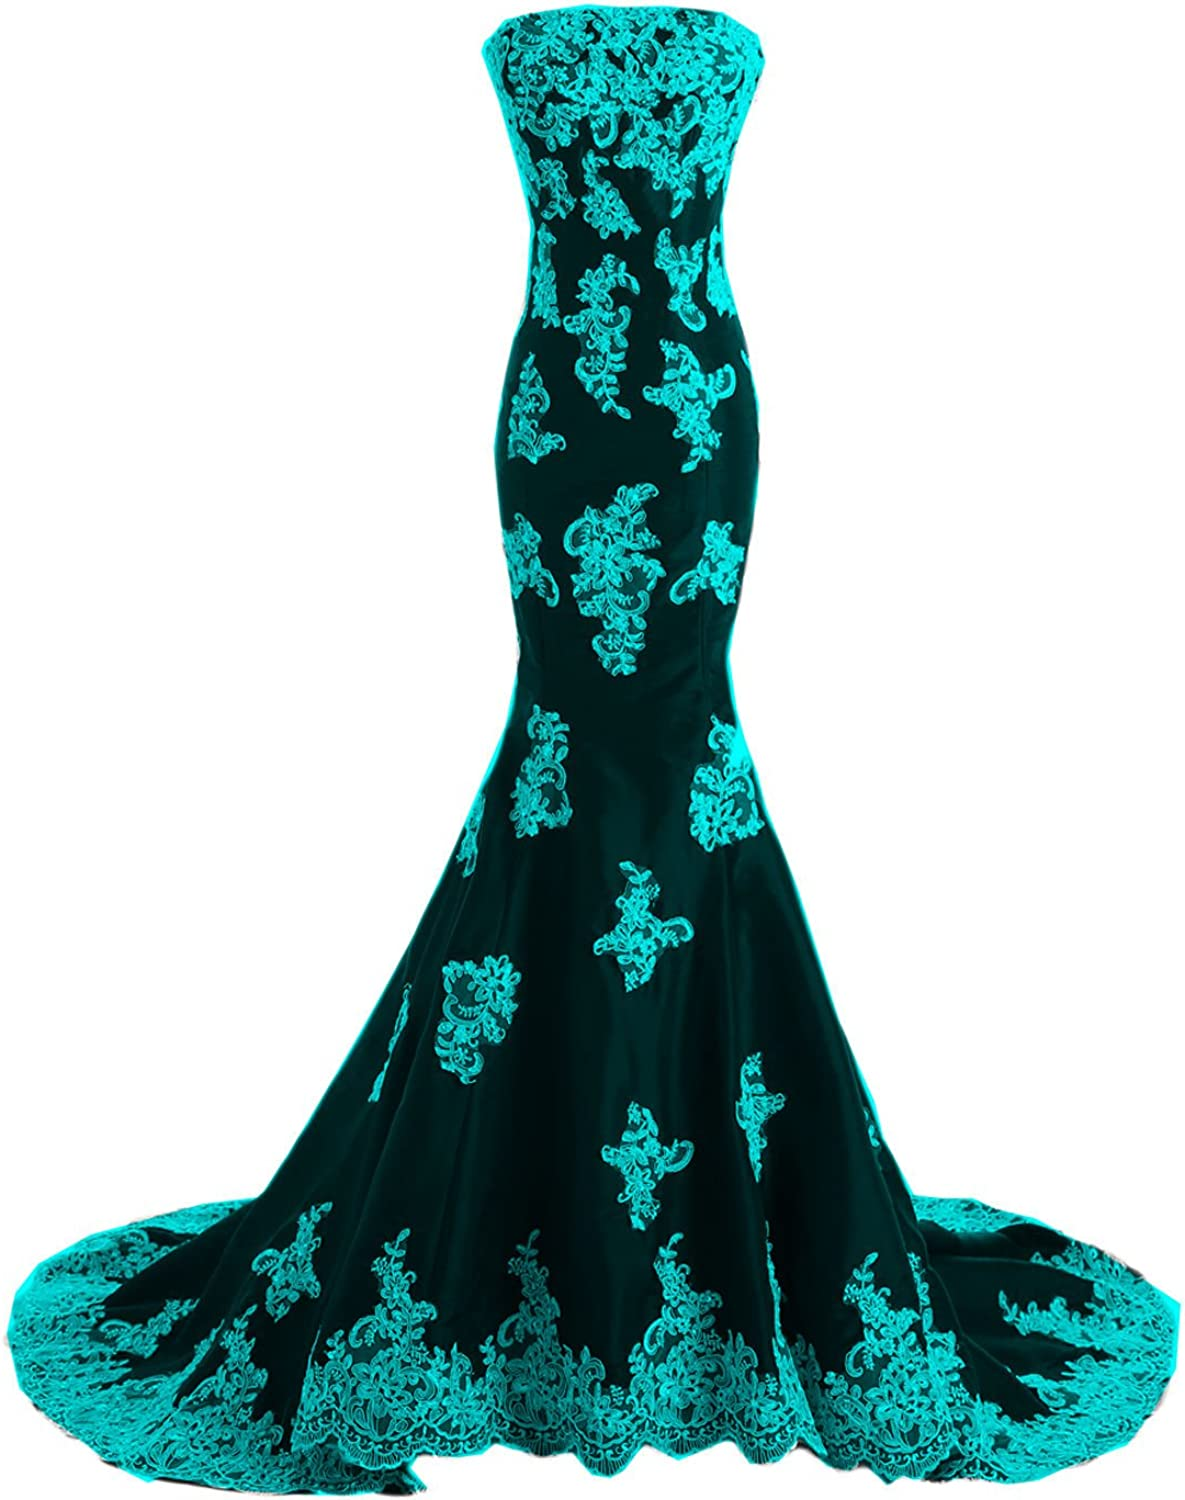 DINGZAN Black and White Applique Mermaid Long Mother of the Bride Prom Dresses